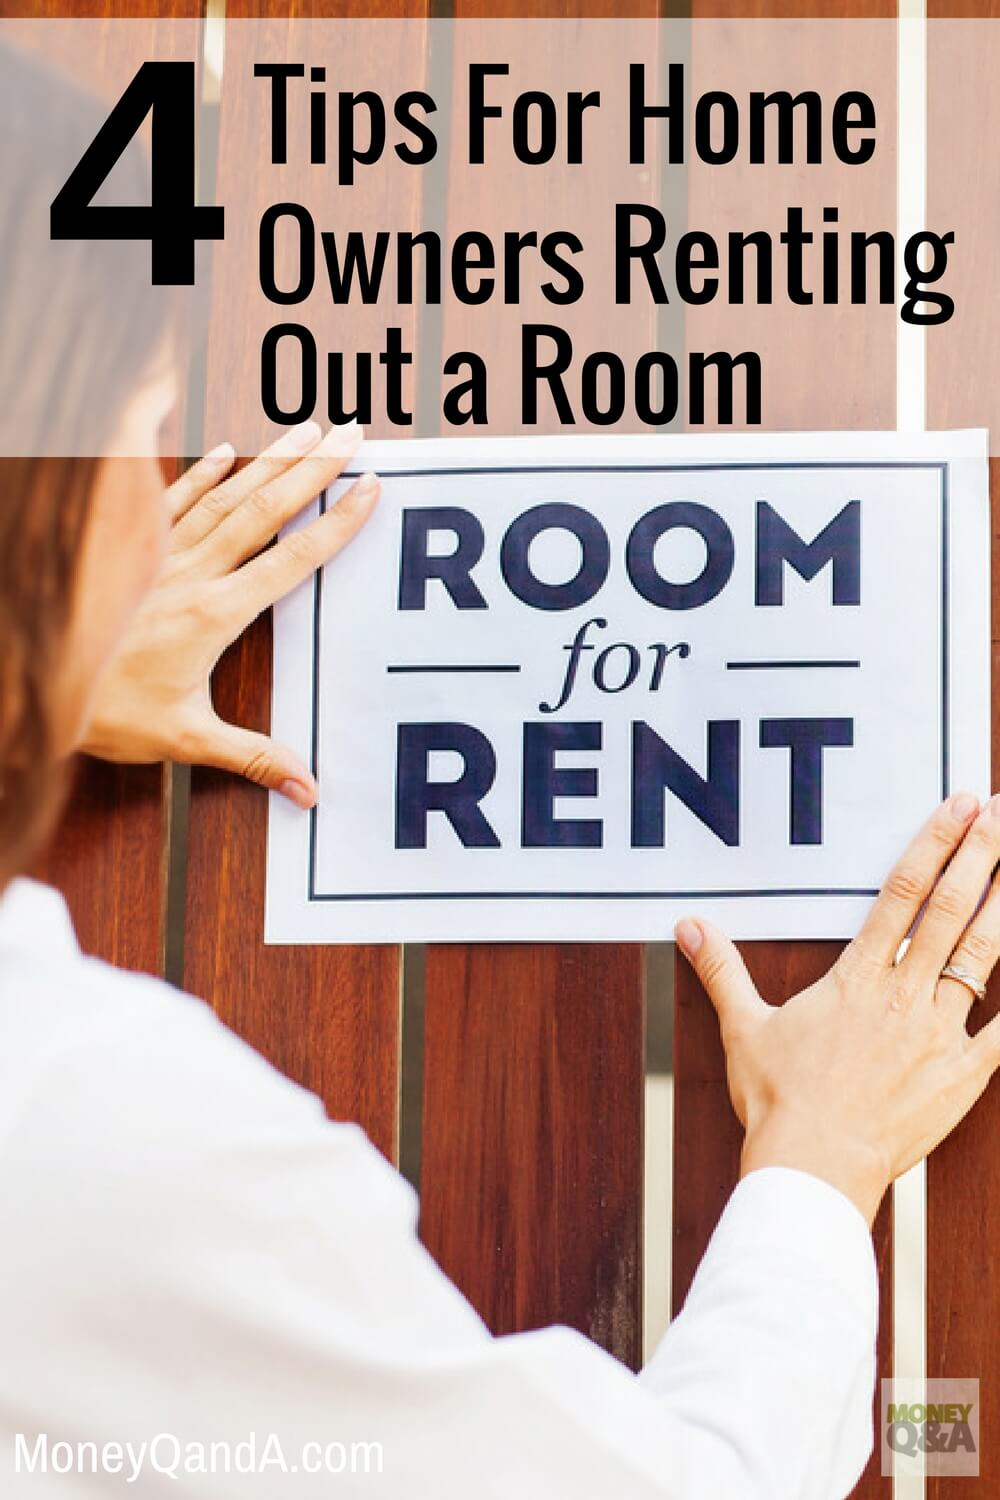 Renting out a room